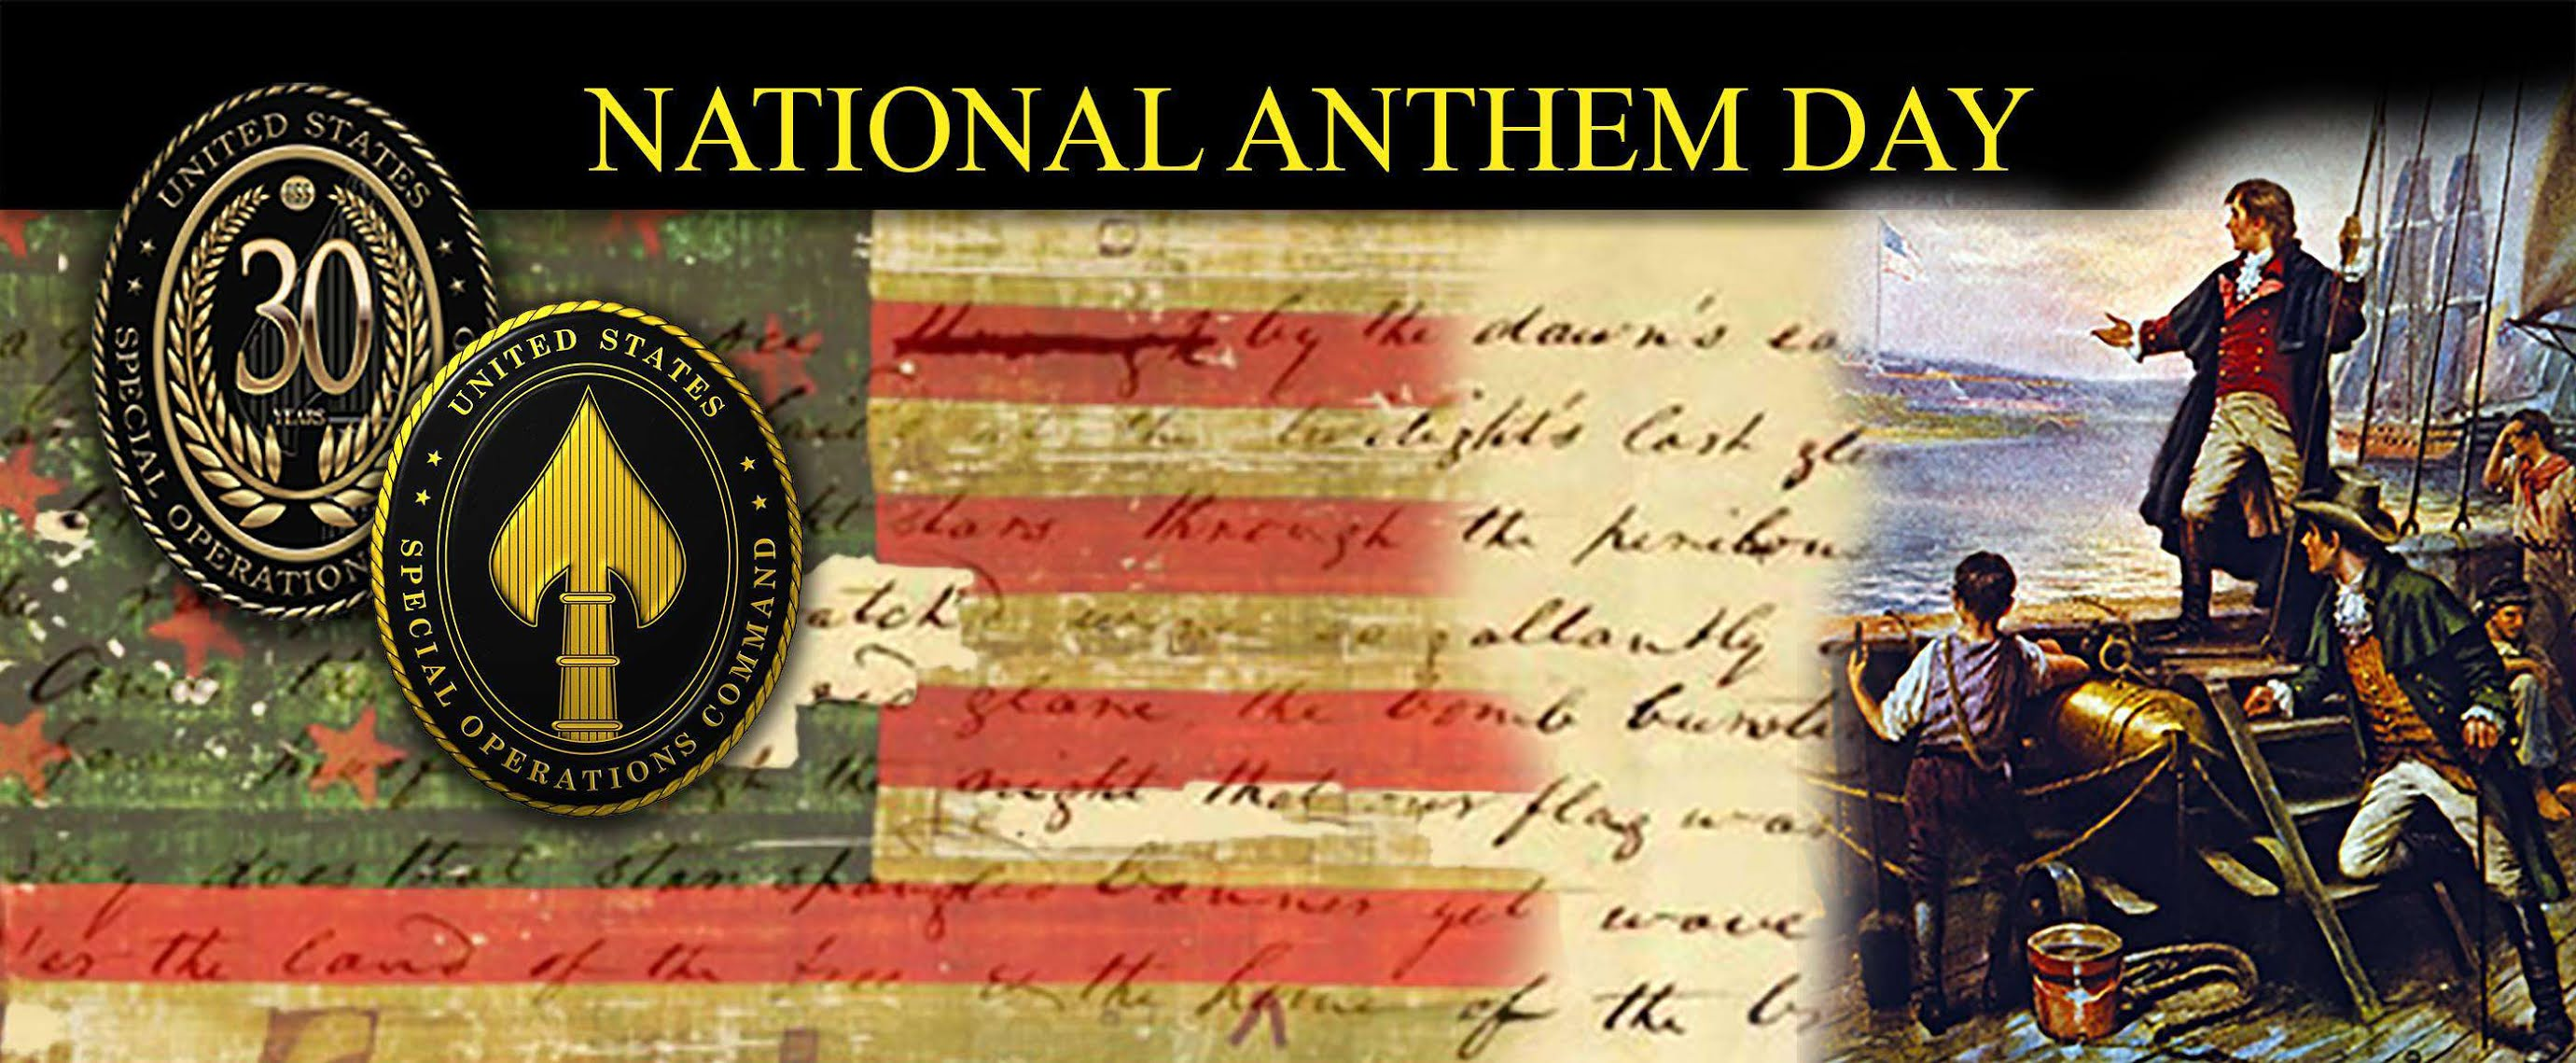 National Anthem Day Wishes